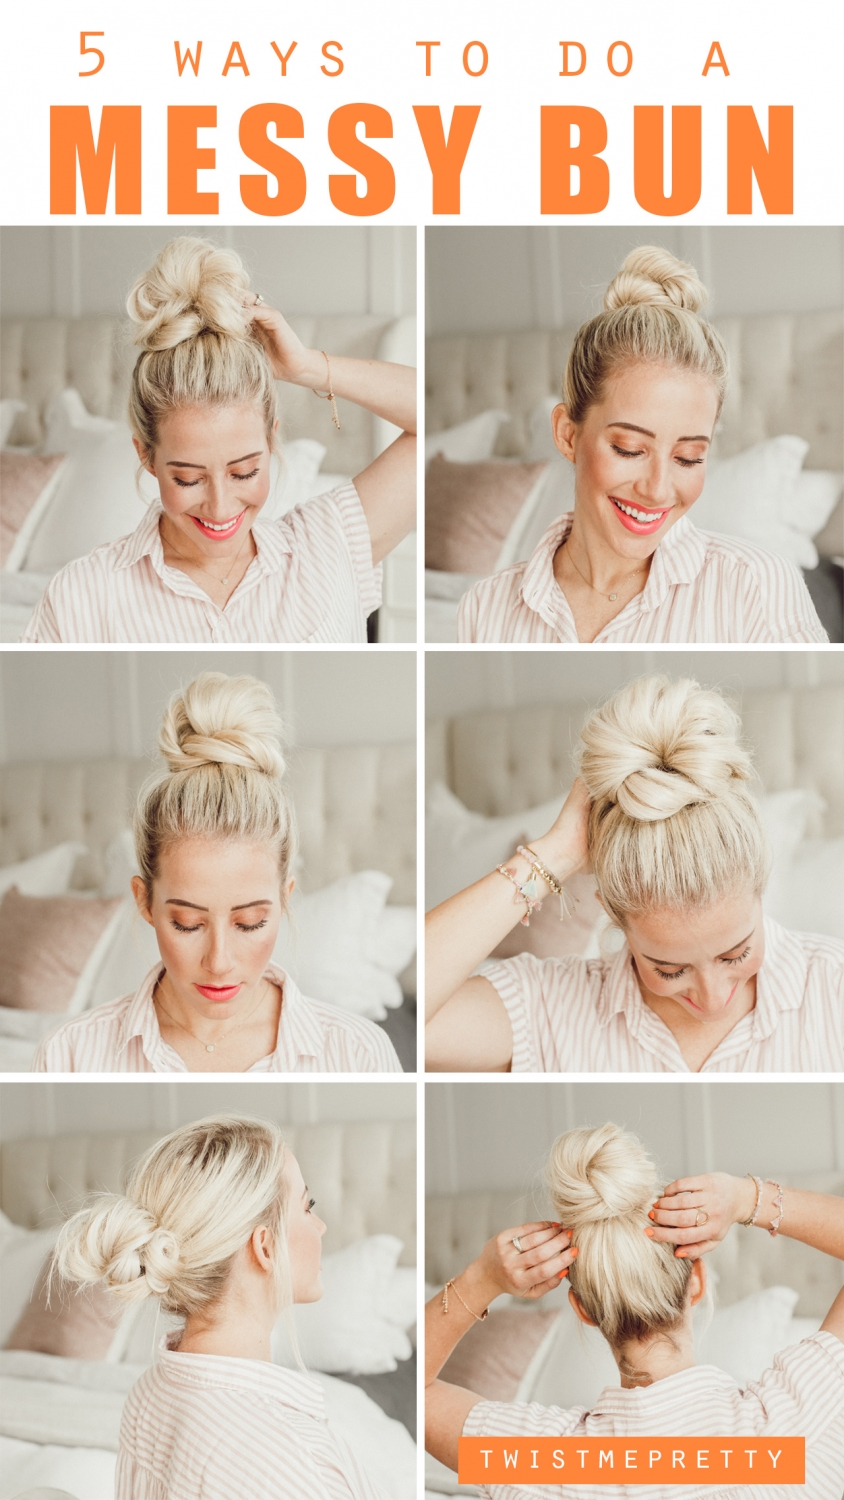 5 ways to do a messy bun tutorial www.twistmepretty.com